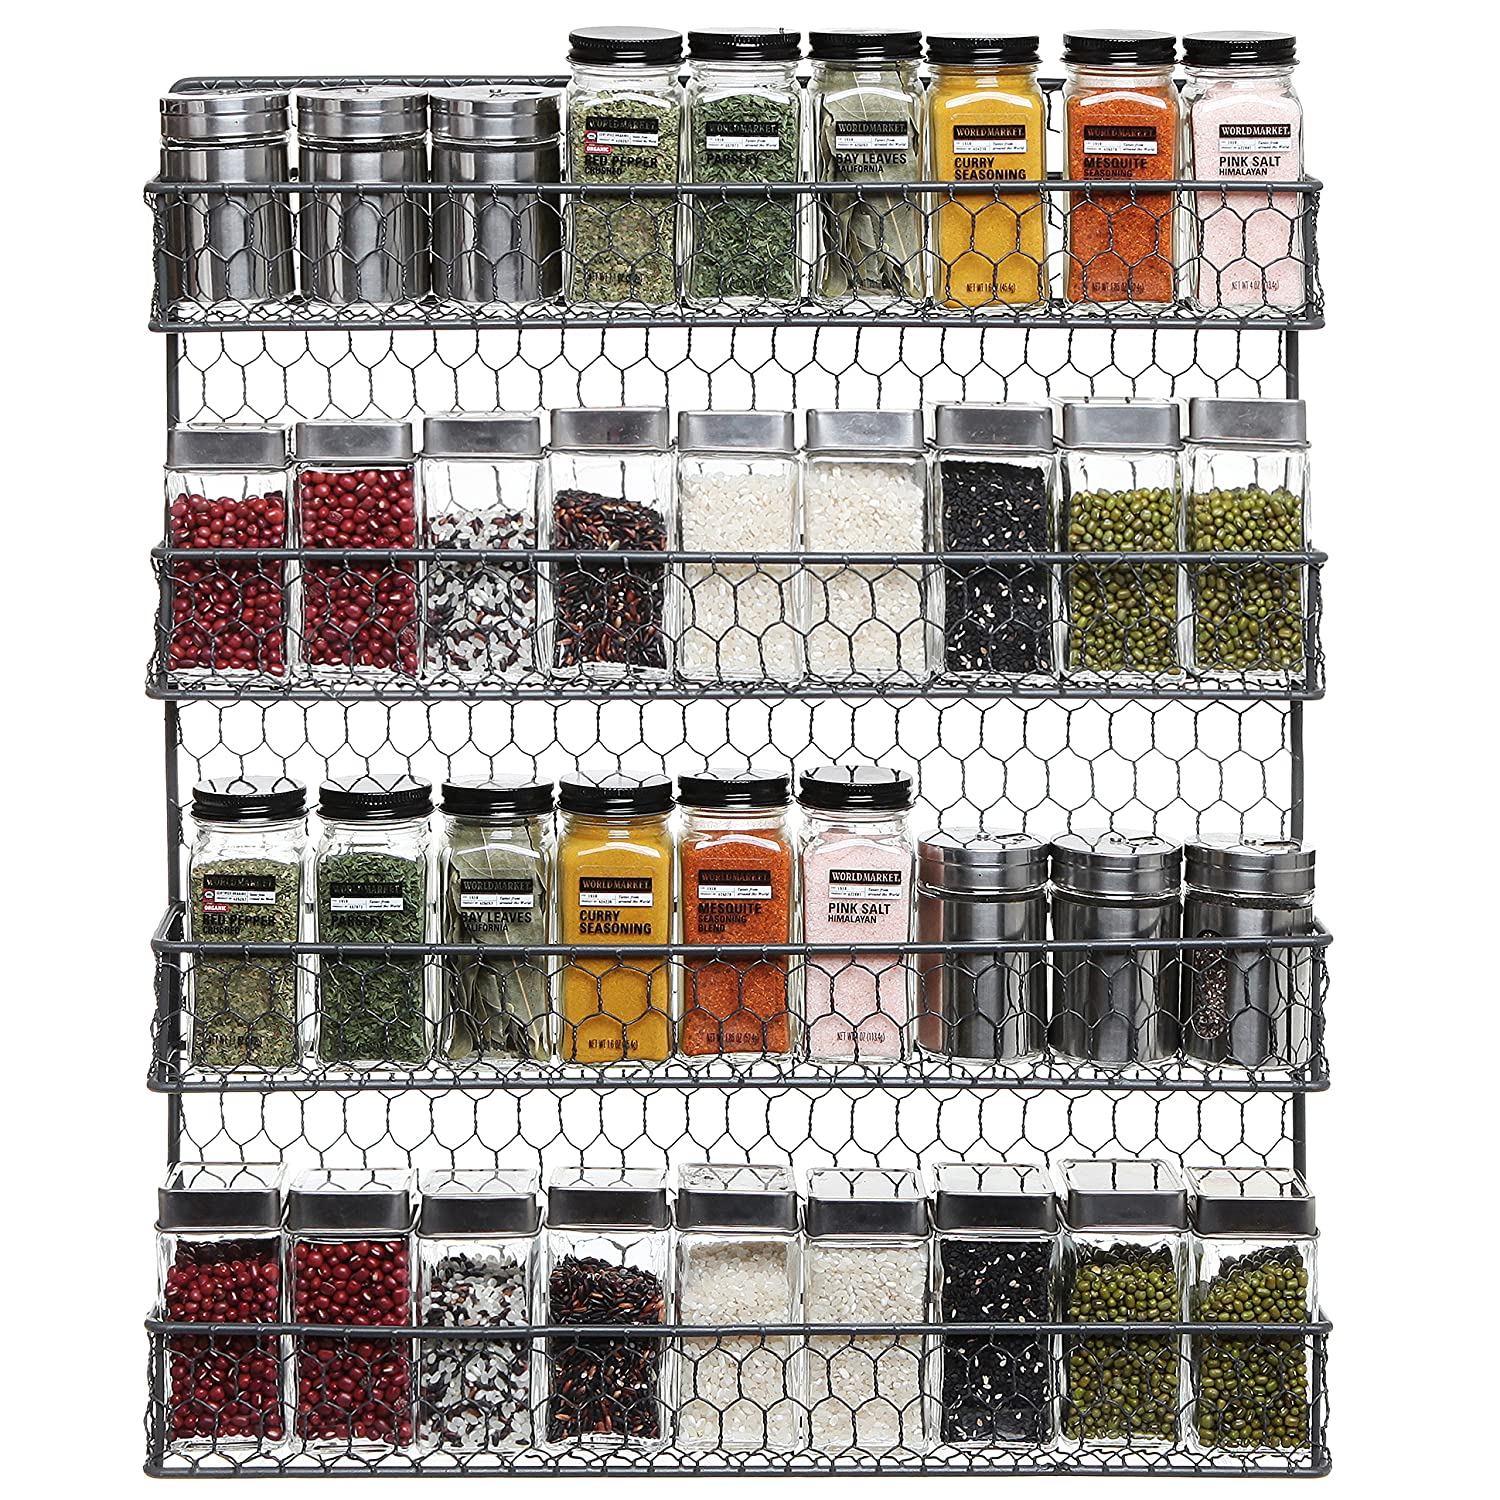 Amazon.com: 4 Tier Gray Country Rustic Chicken Wire Pantry ...